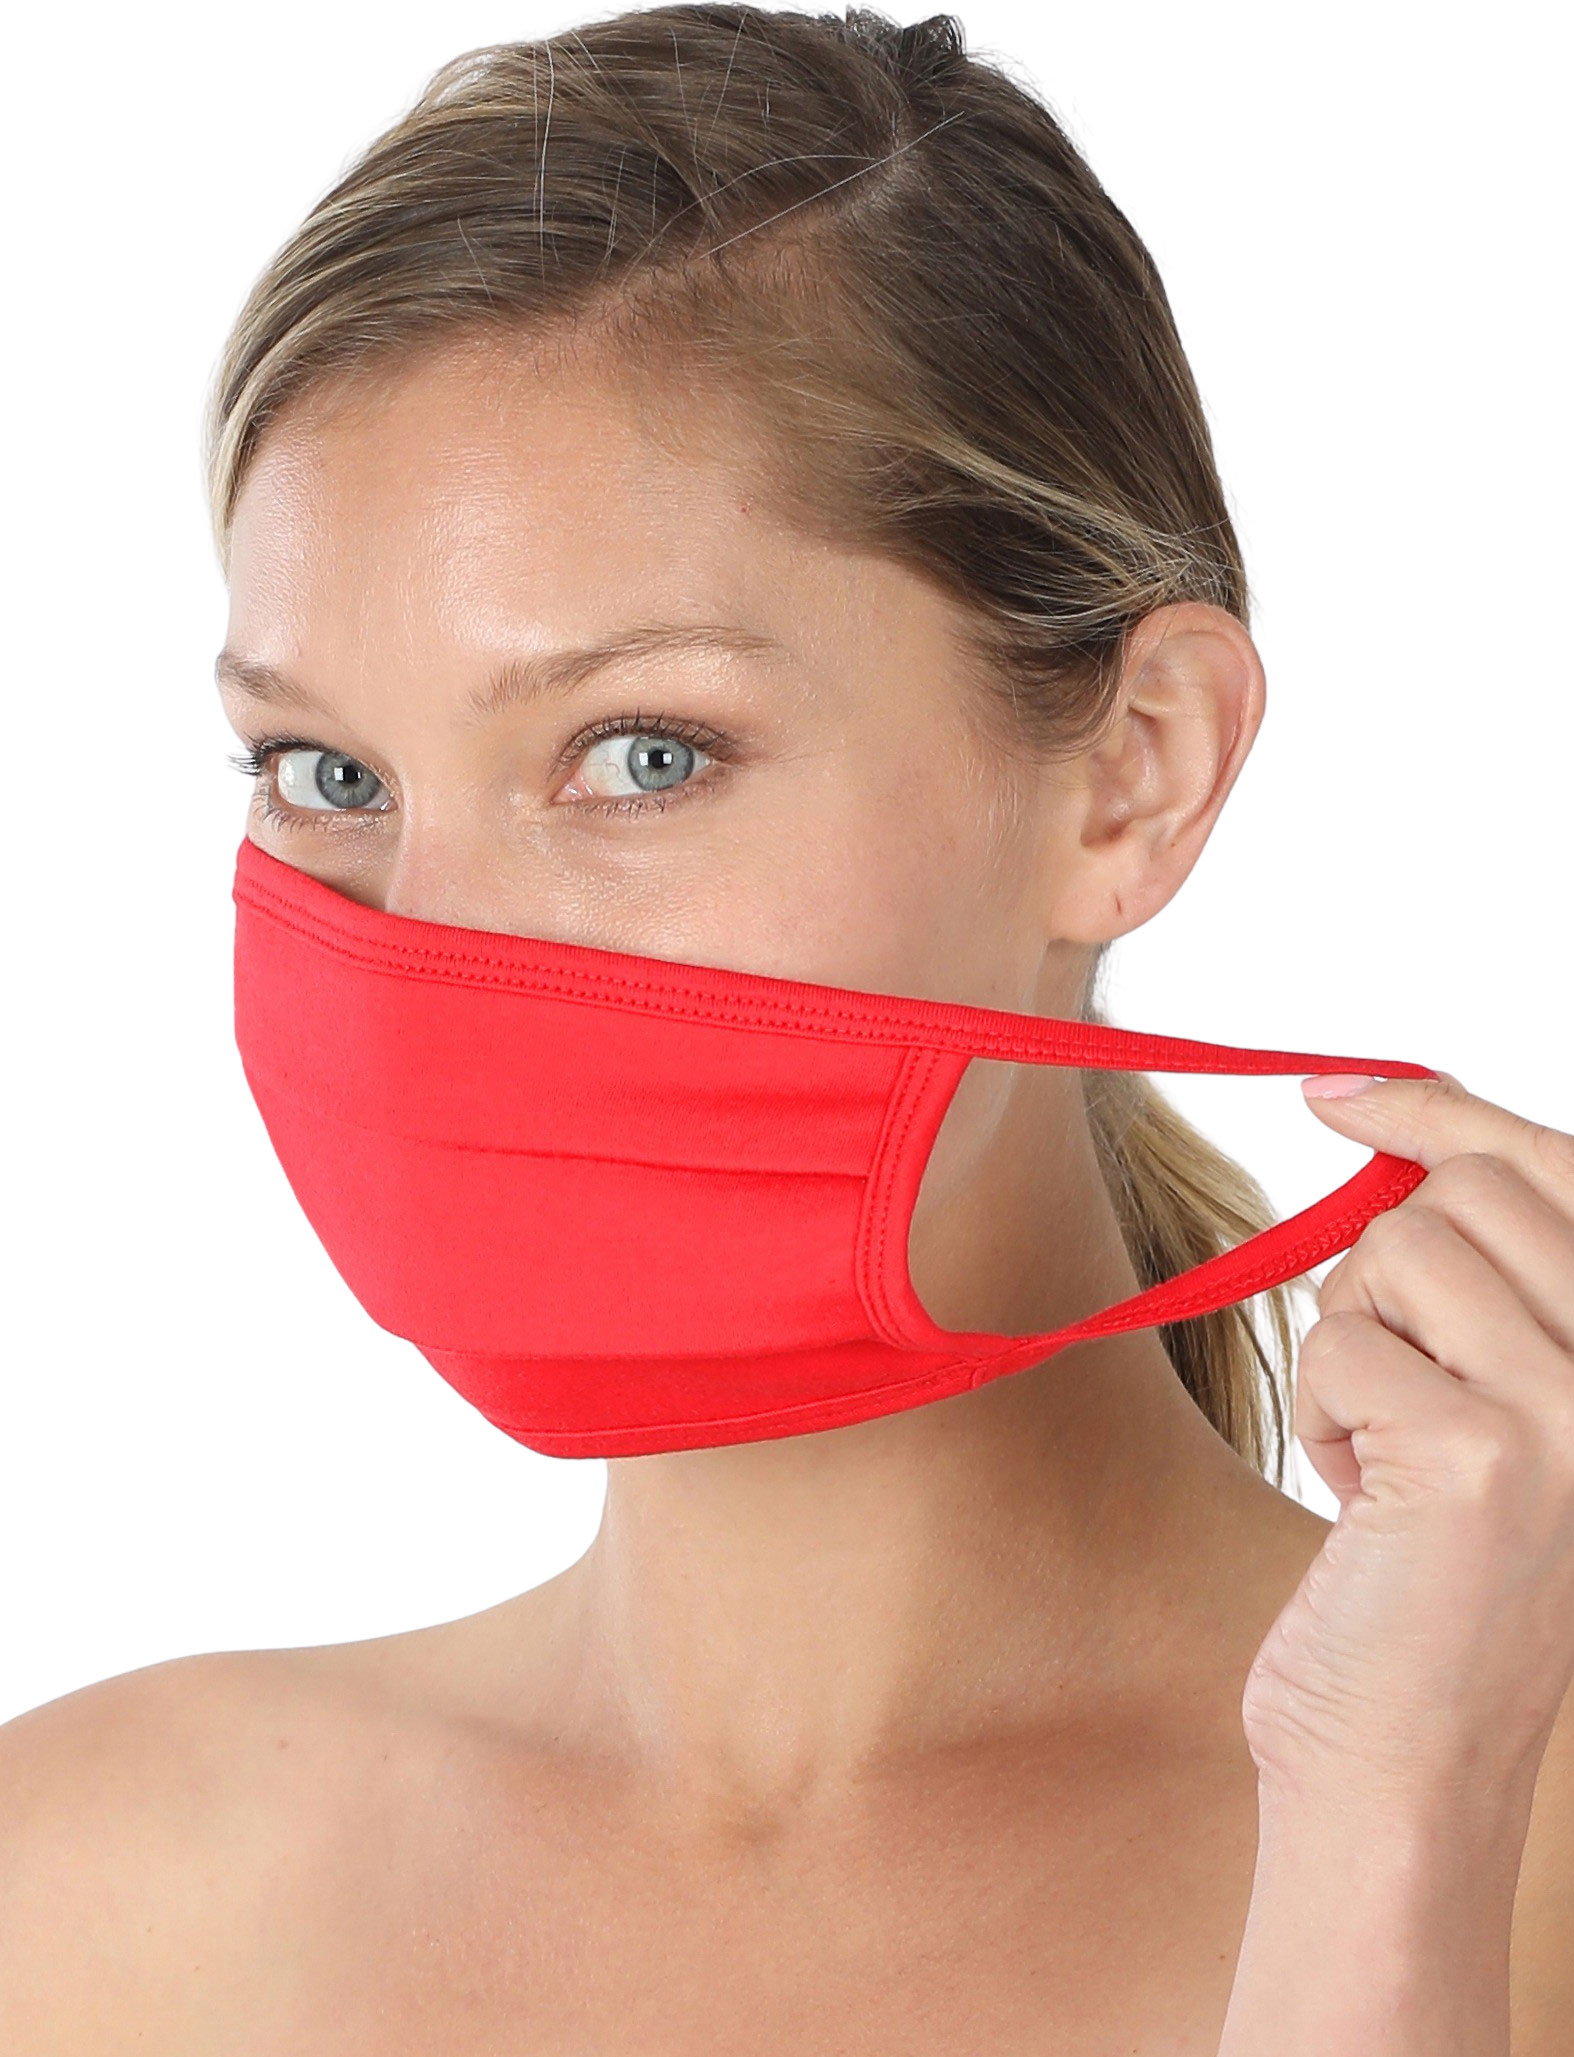 wholesale Protective Masks - Cotton Blend Two Ply CMK/CPMK